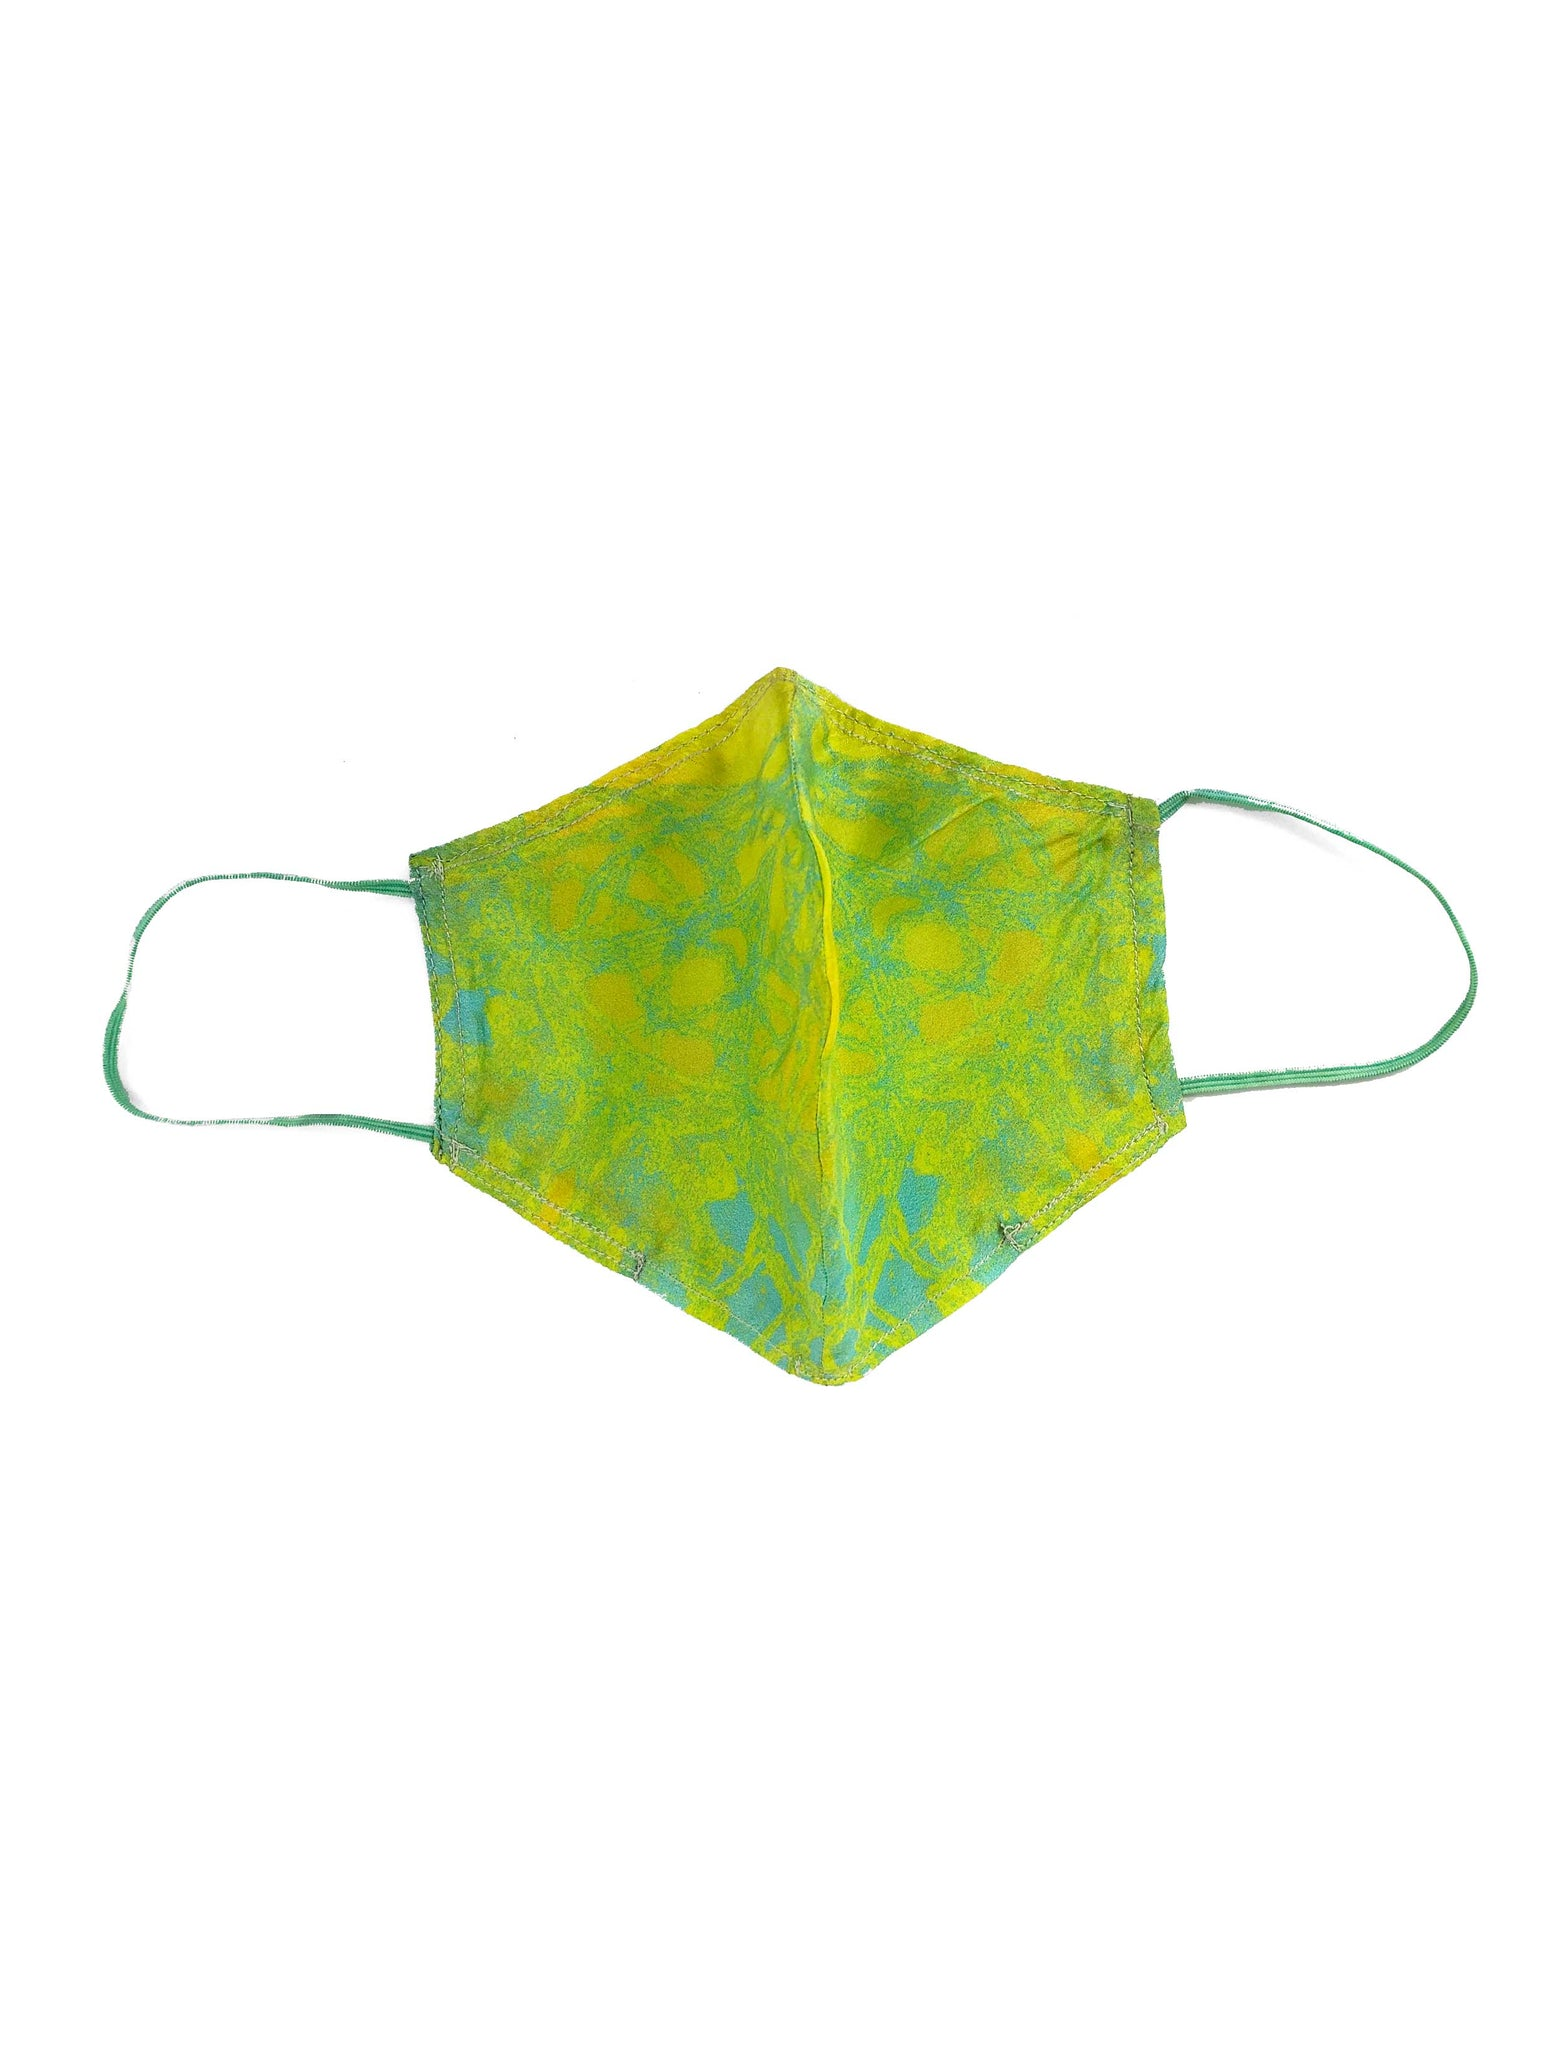 Eury offcut mask + 'Marine Science is Beautiful' organic cotton string bag